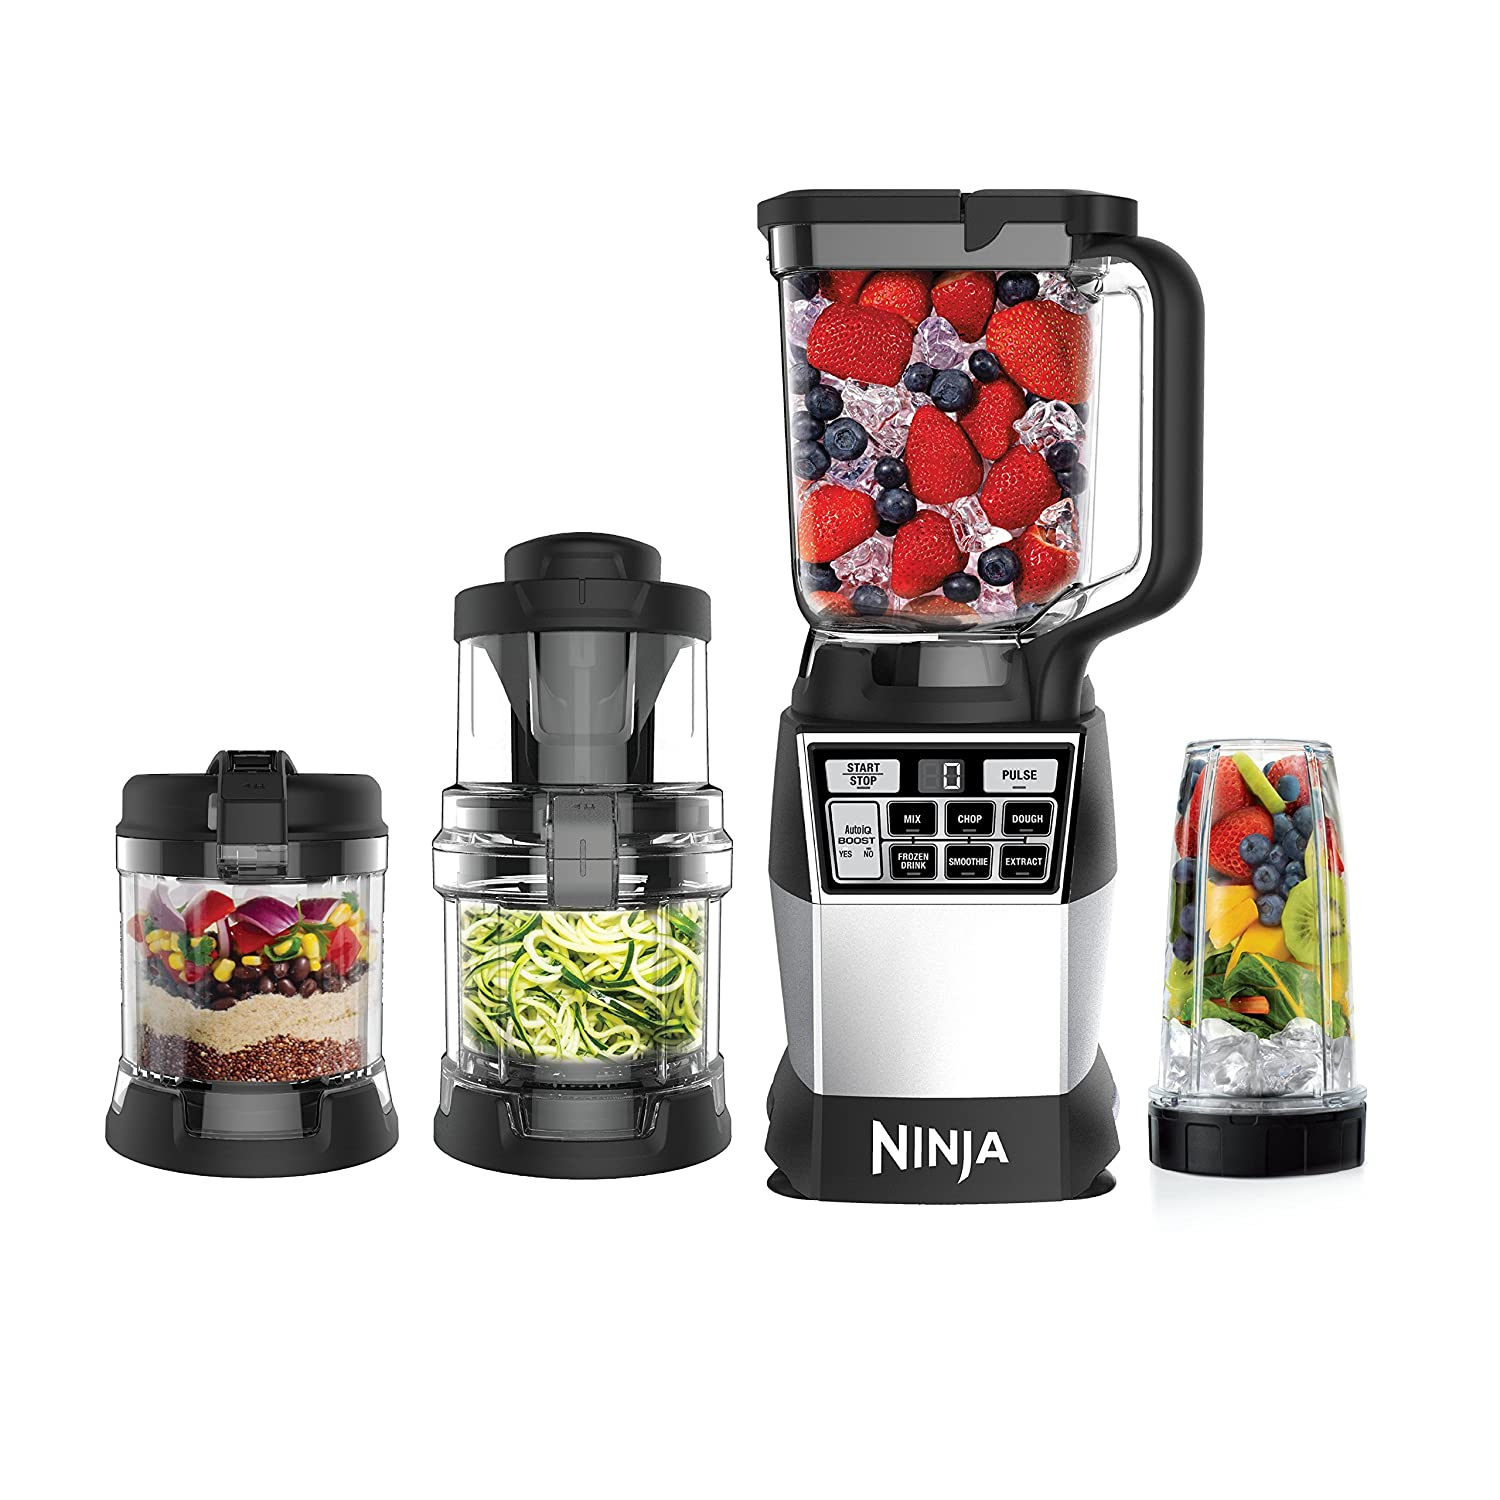 ninja 4 in 1 kitchen system blending processing